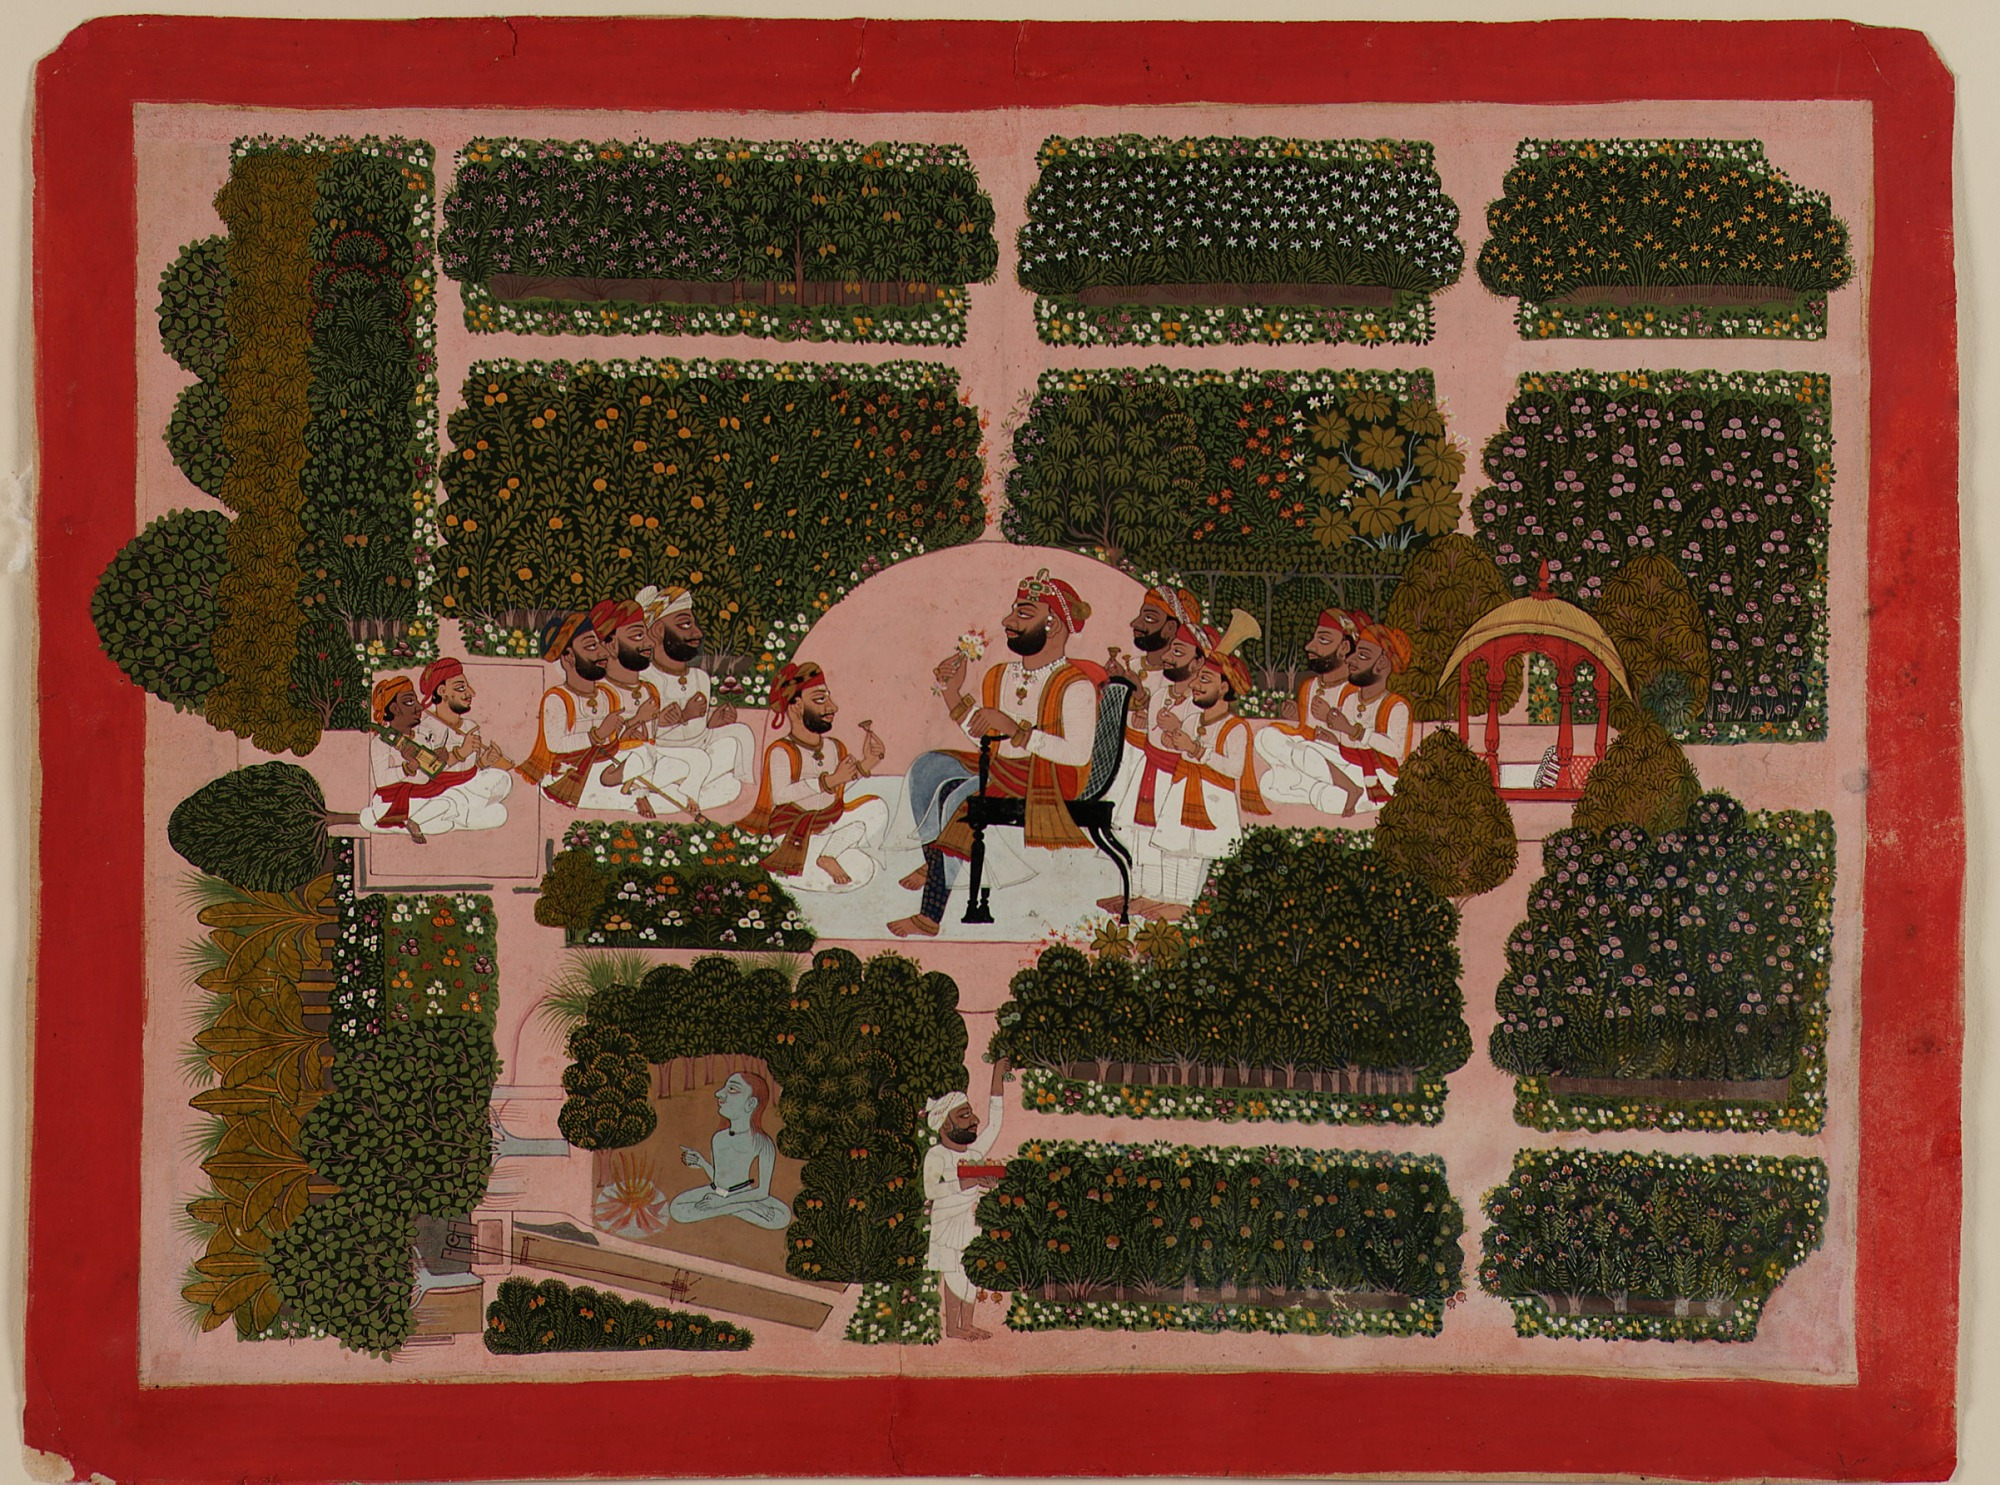 : Akhairaj with Courtiers and Musicians in a Garden